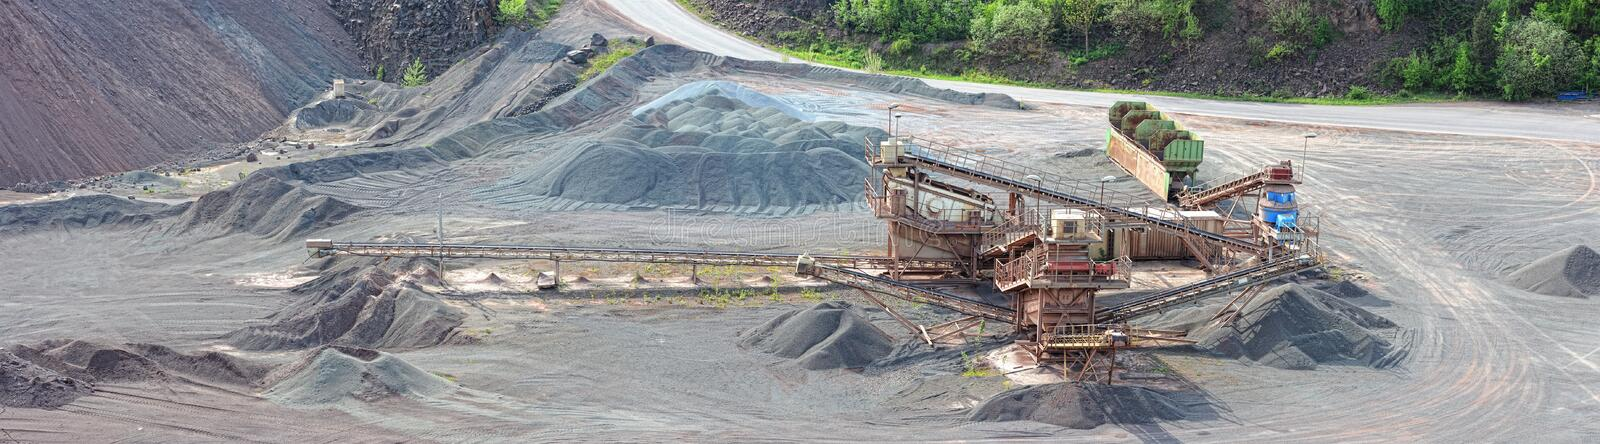 Stone crusher machine in an open pit mine. Panoramic images of a stone crusher machine in an open pit mine. mining industry. images created of 5 seperate images stock photo